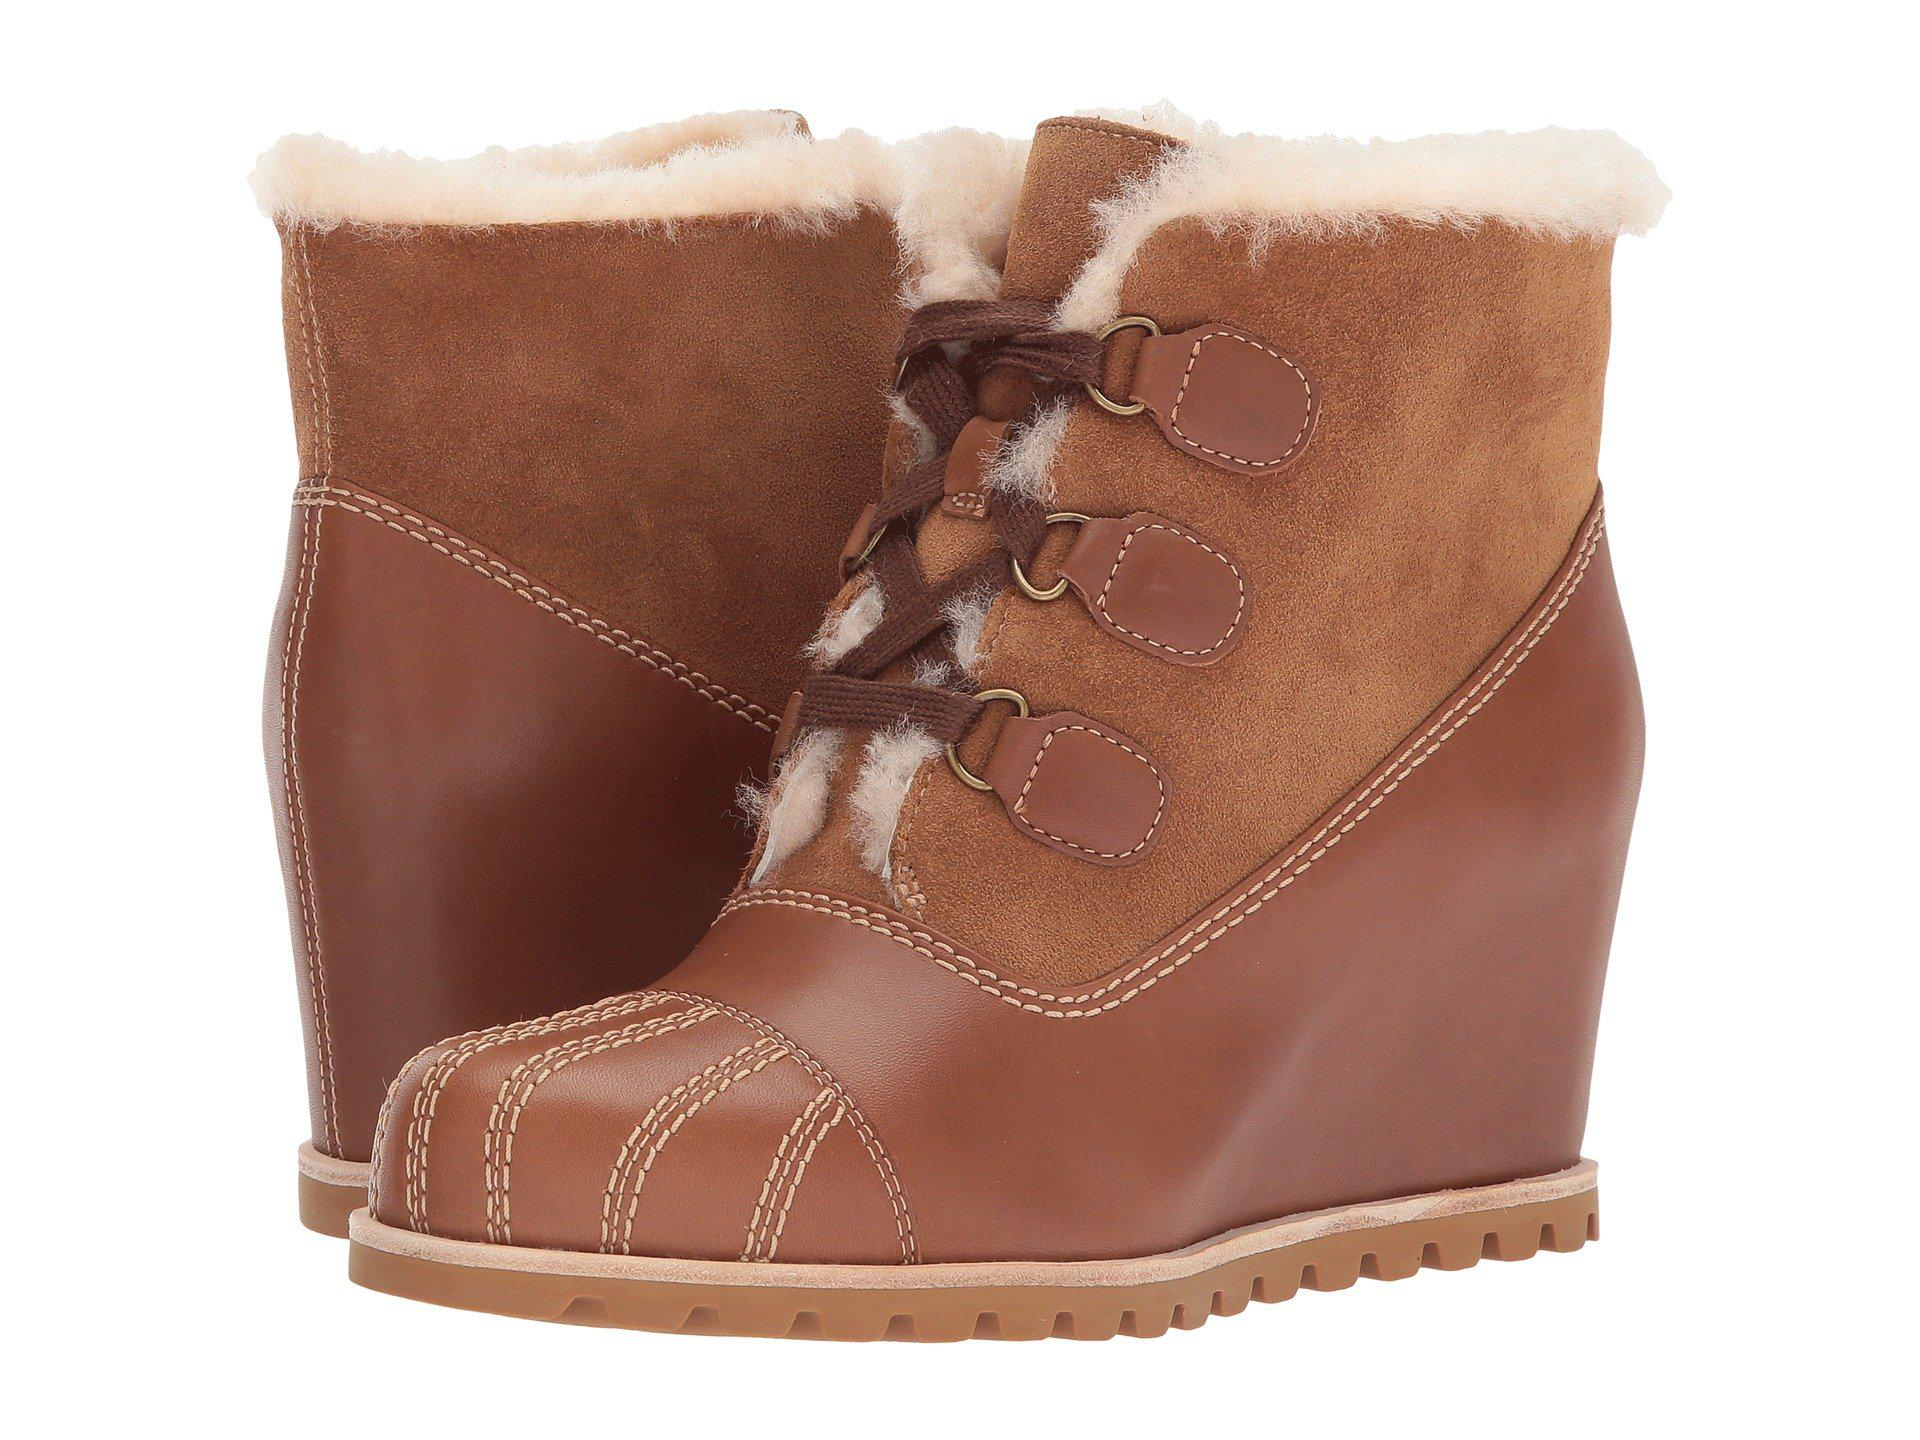 868ae3b798c Lyst - UGG Alasdair Waterproof in Brown